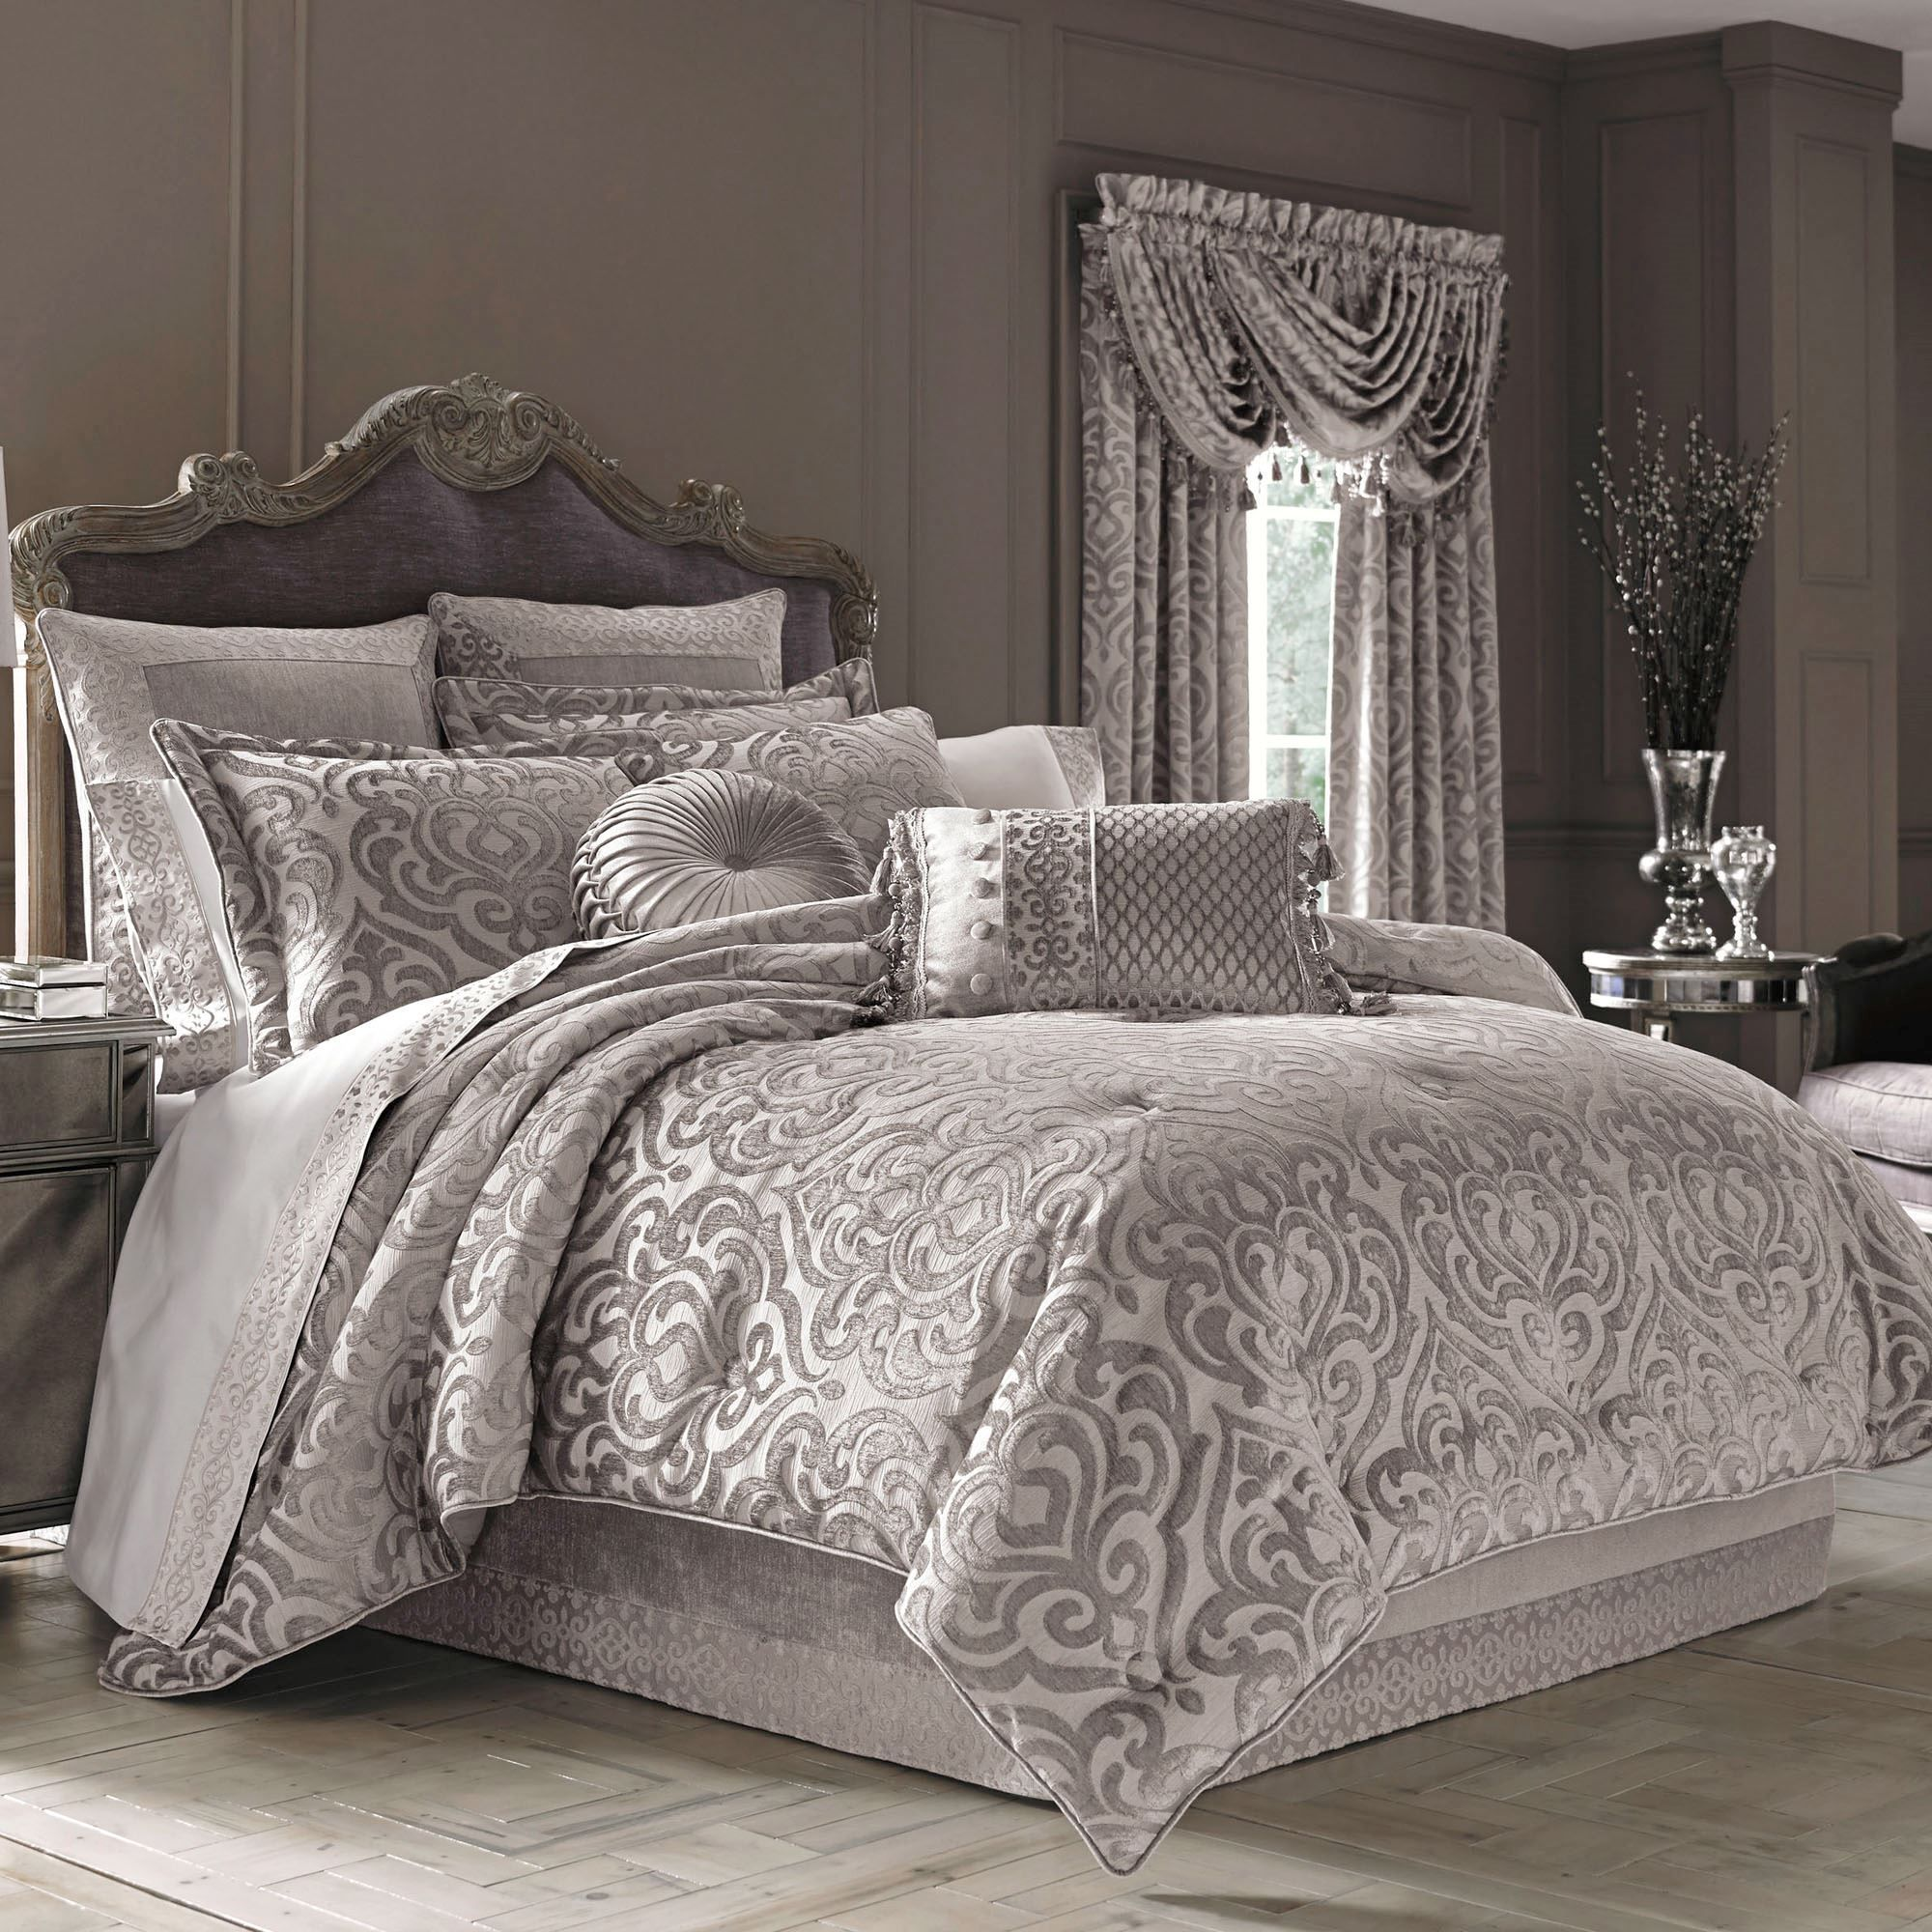 Sicily Silver Gray Medallion Comforter Bedding By J Queen New York